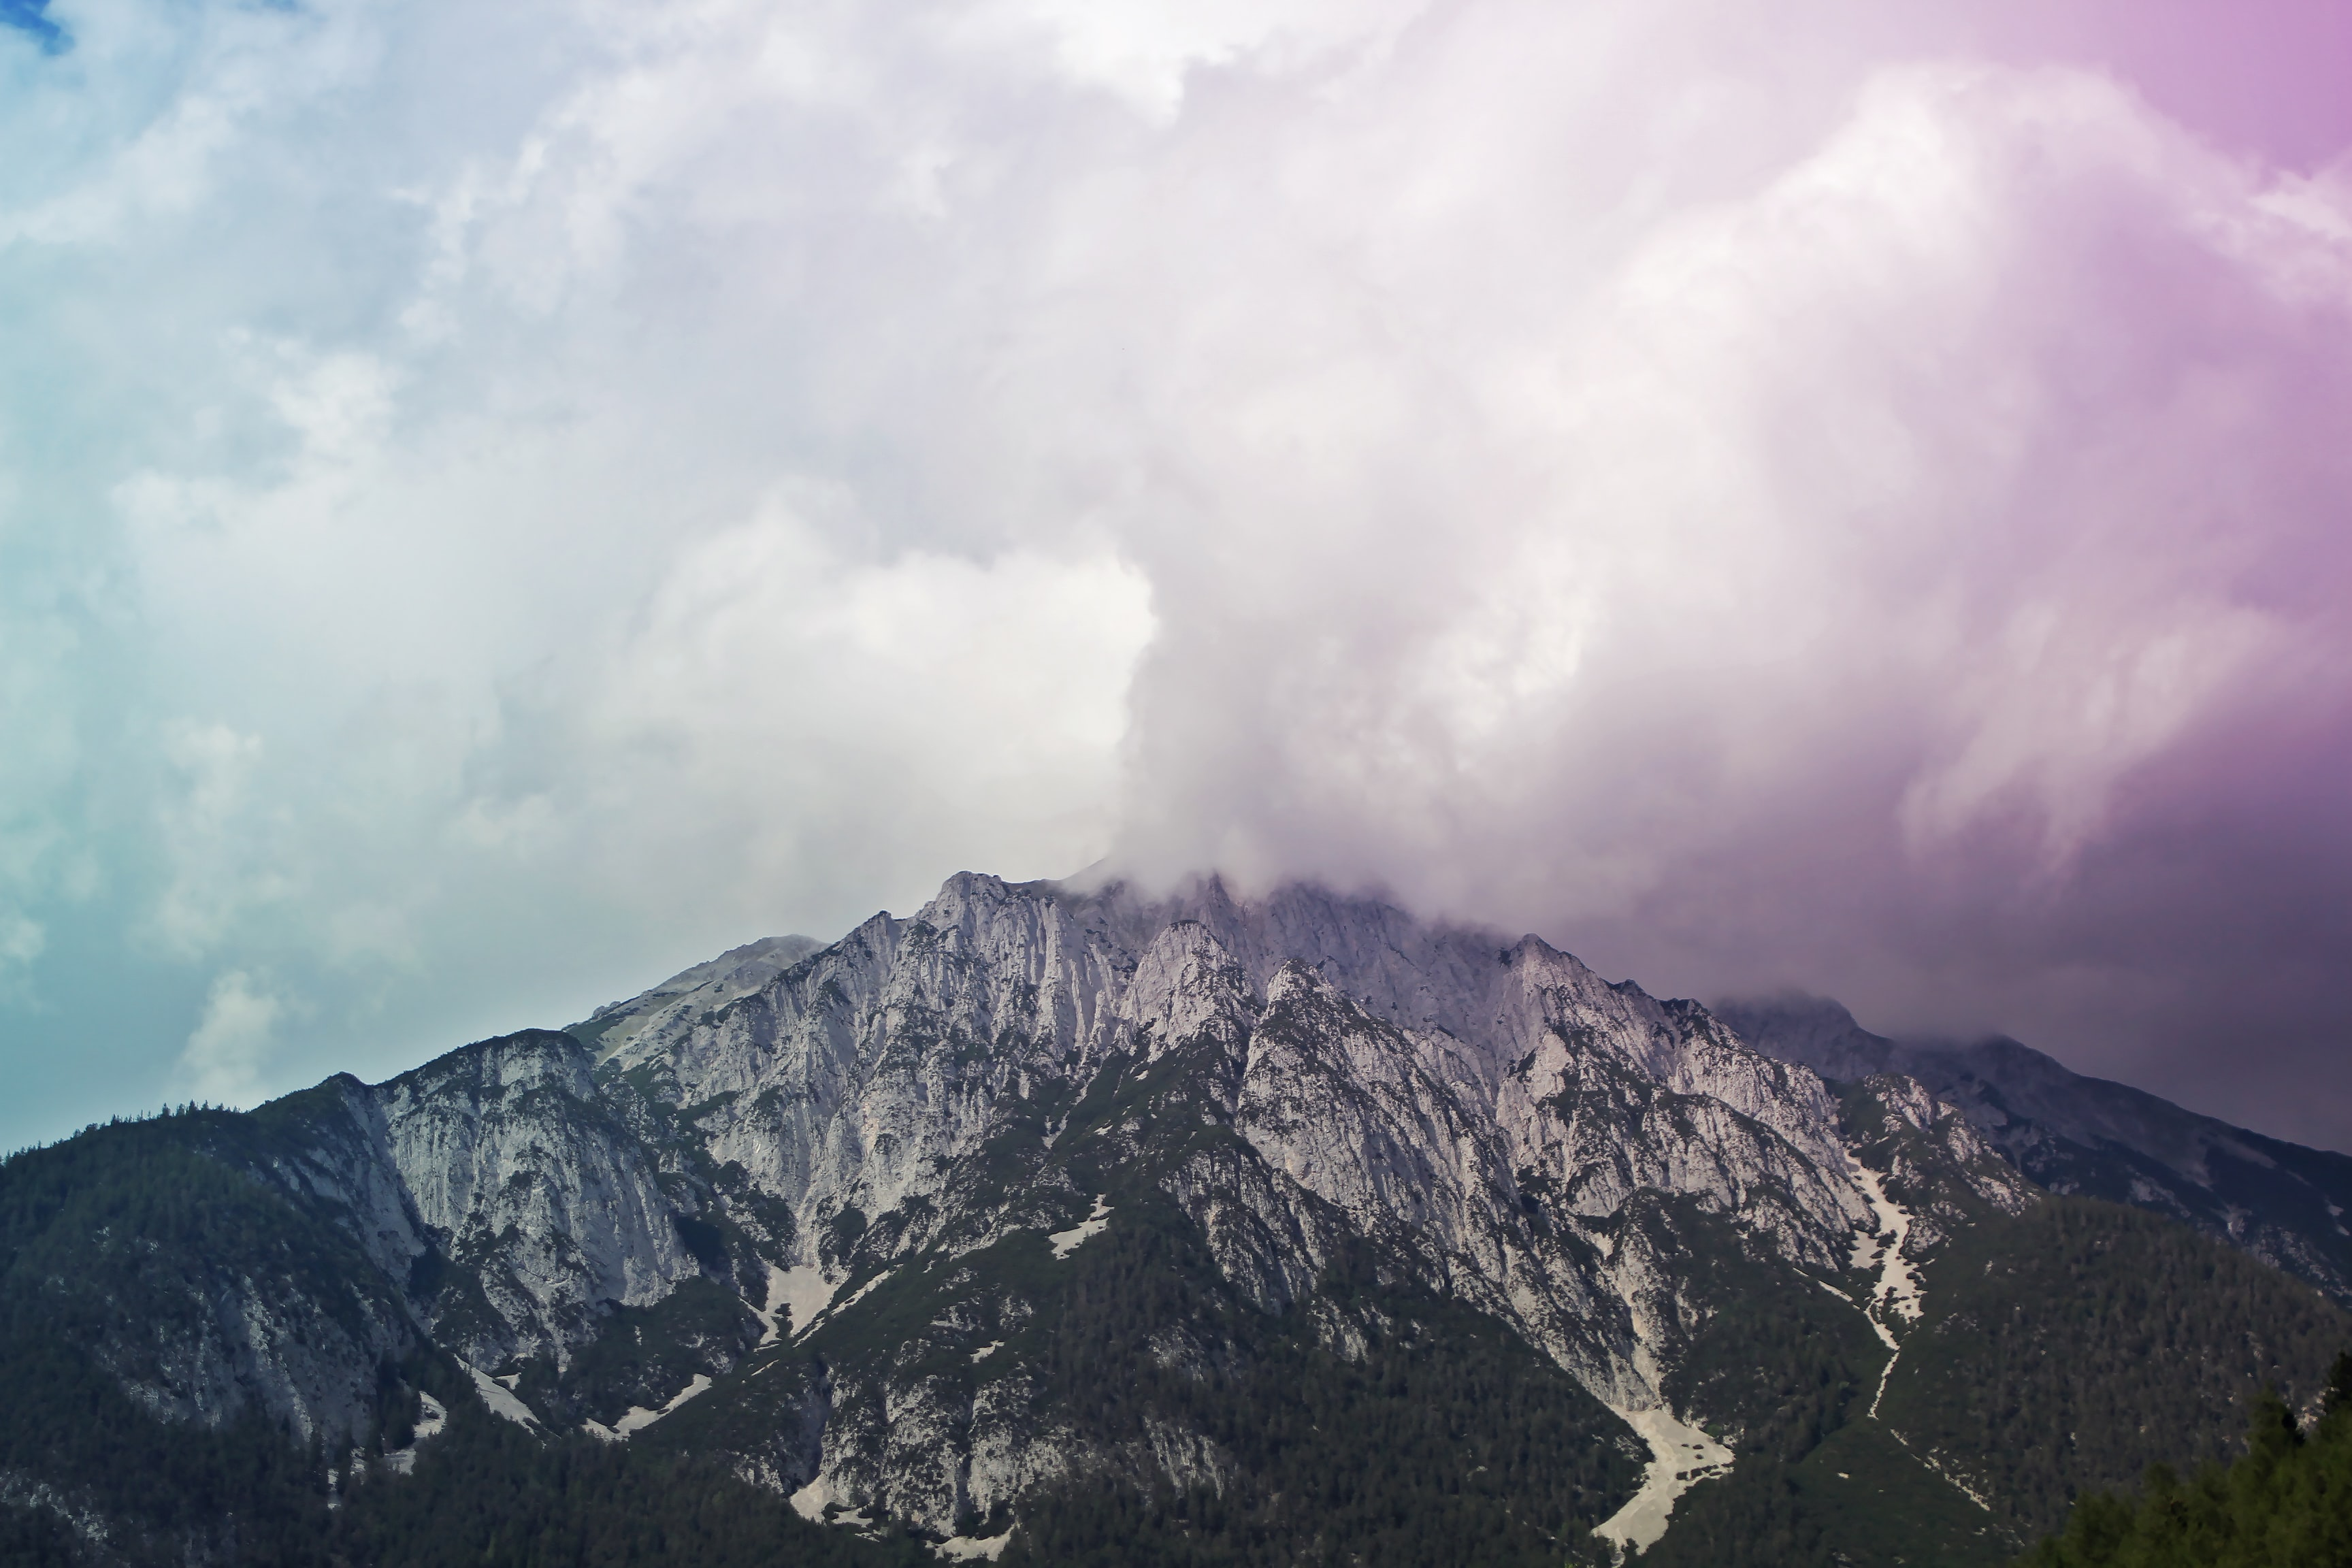 Purple-hued clouds over a rugged mountain in the Swiss Alps